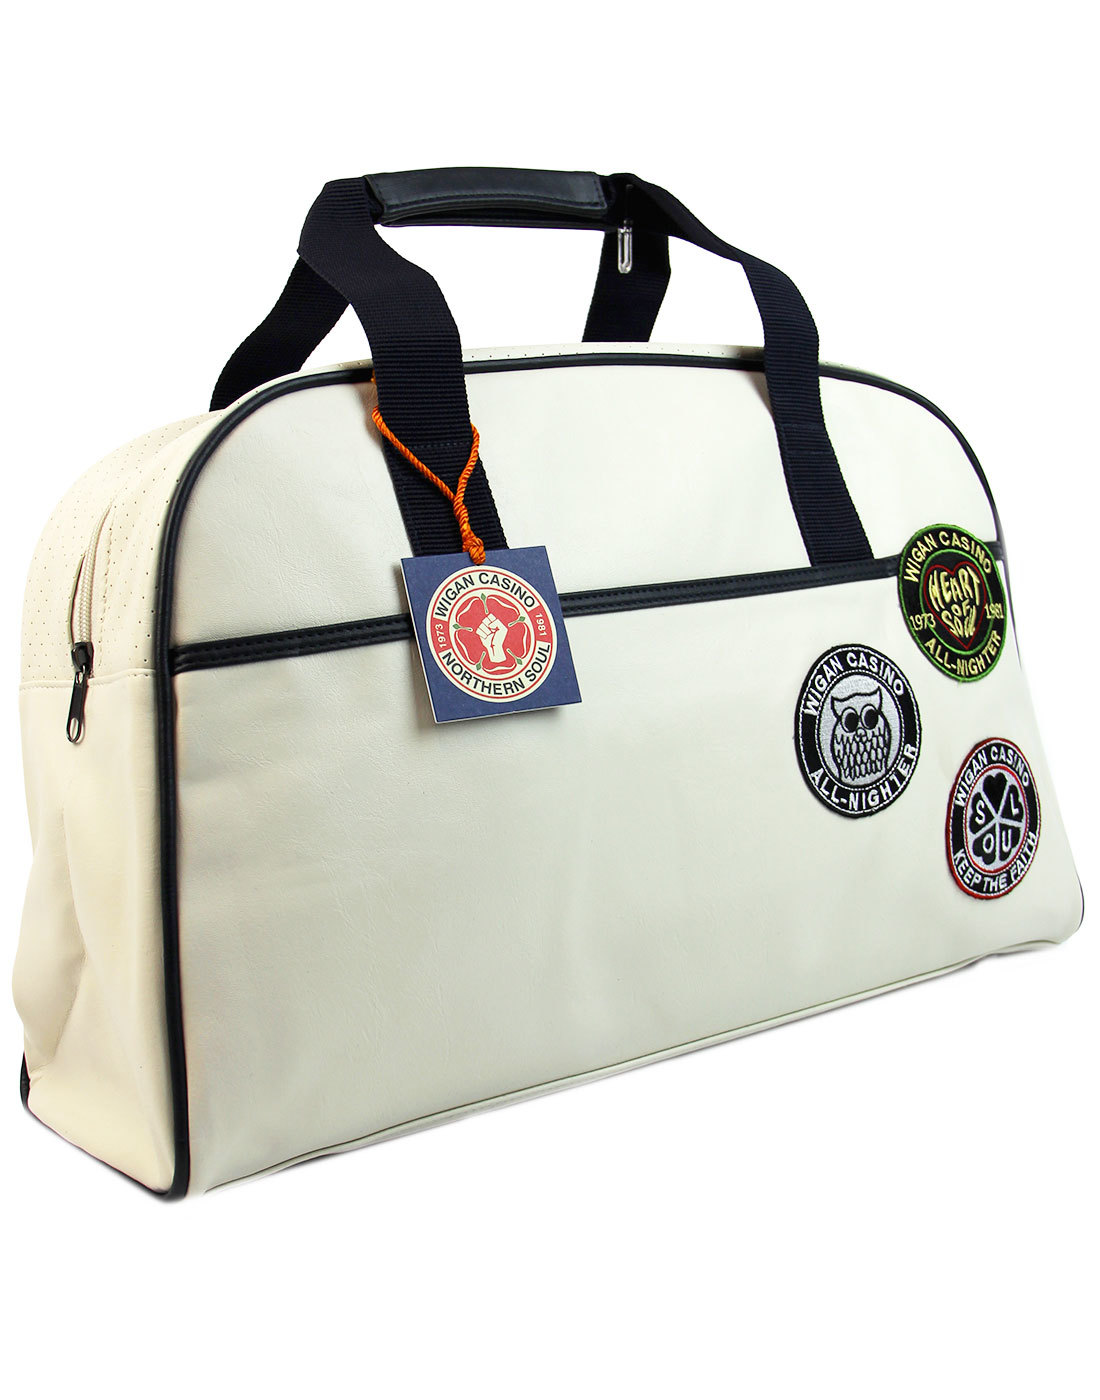 Ska Mod Retro. Northern Soul Retro Bowling Bag With Embroidered Fist Logo